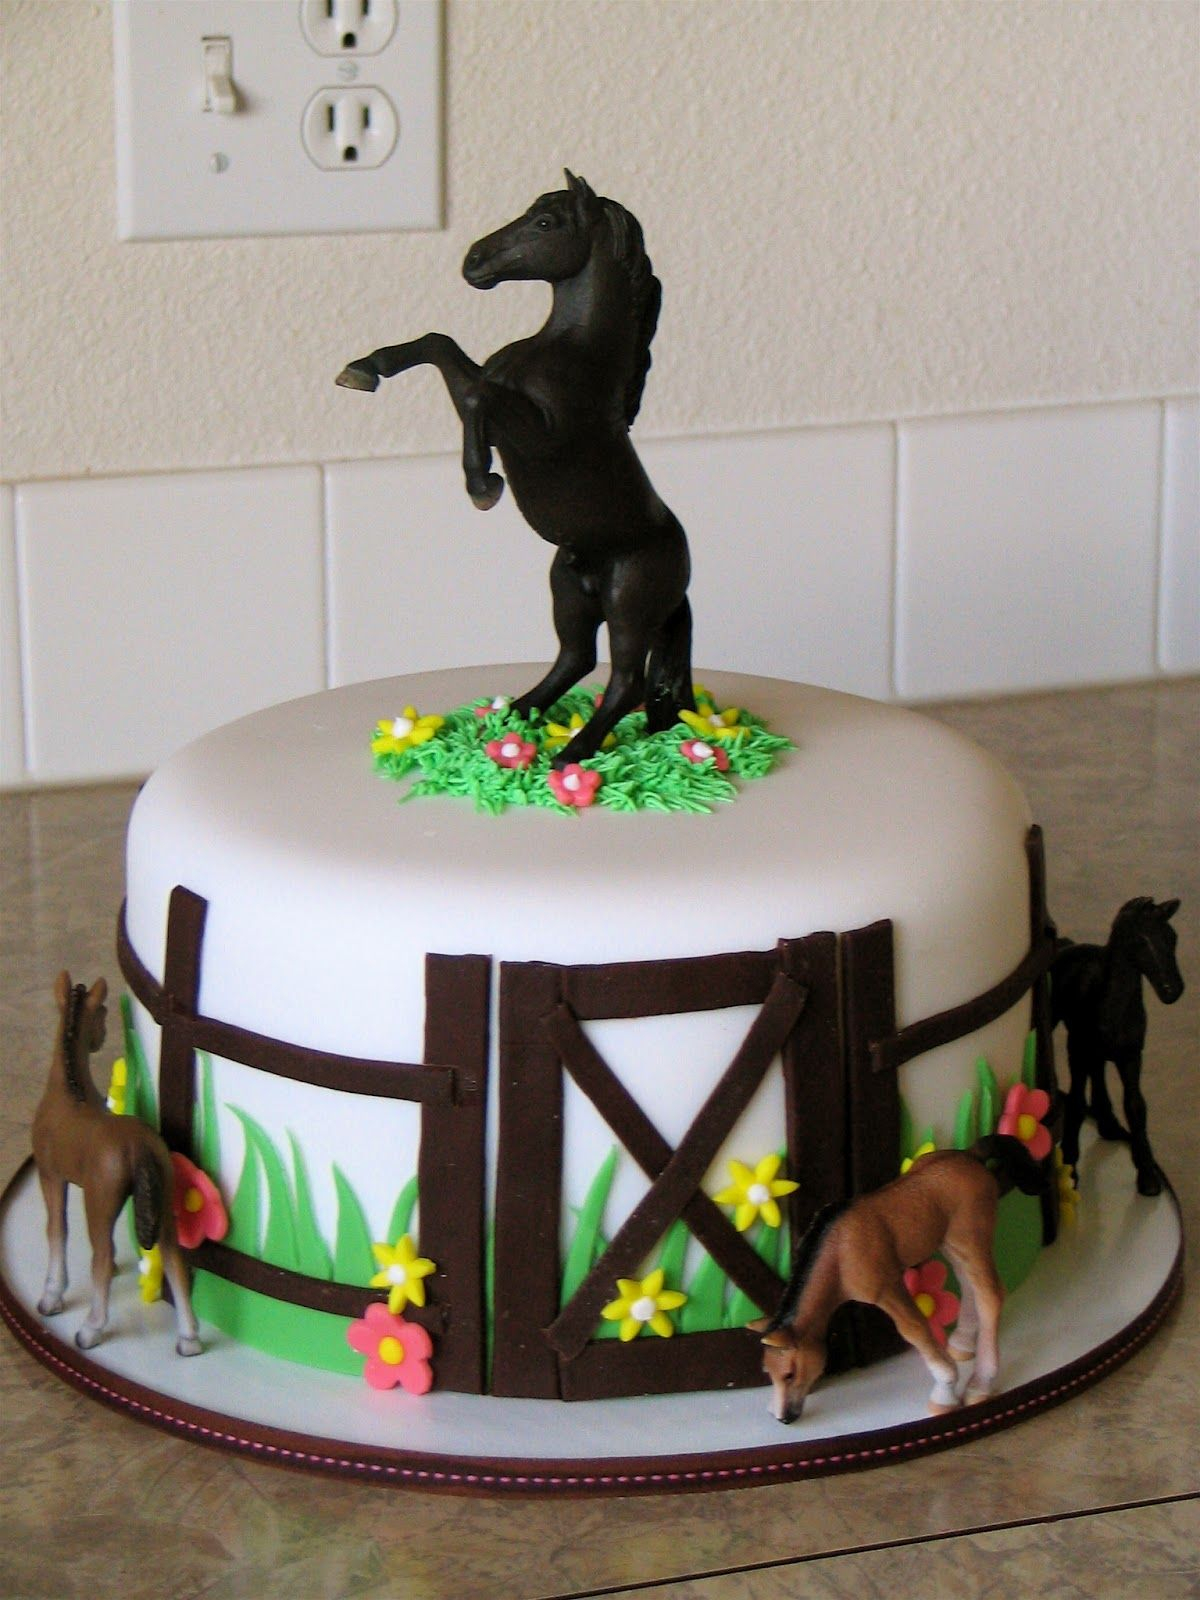 Horse Birthday Cakes Image Result For Horse Jumping Birthday Cake 8th Birthday In 2019